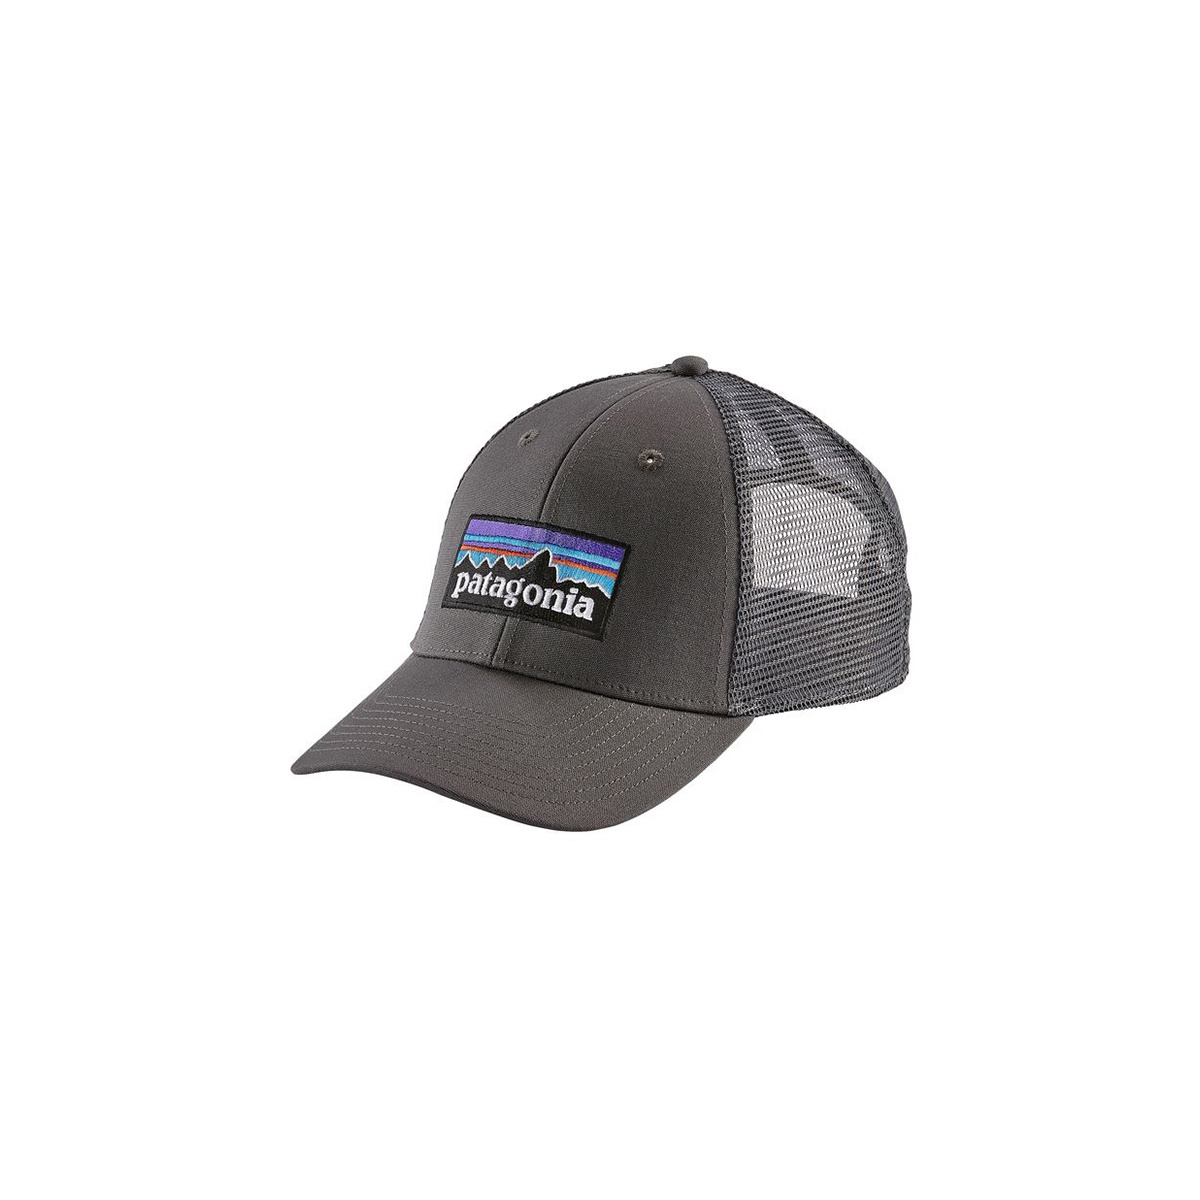 ab1c13f23bbb8 Patagonia P-6 Logo LoPro Trucker Hat - Gearhead Outfitters